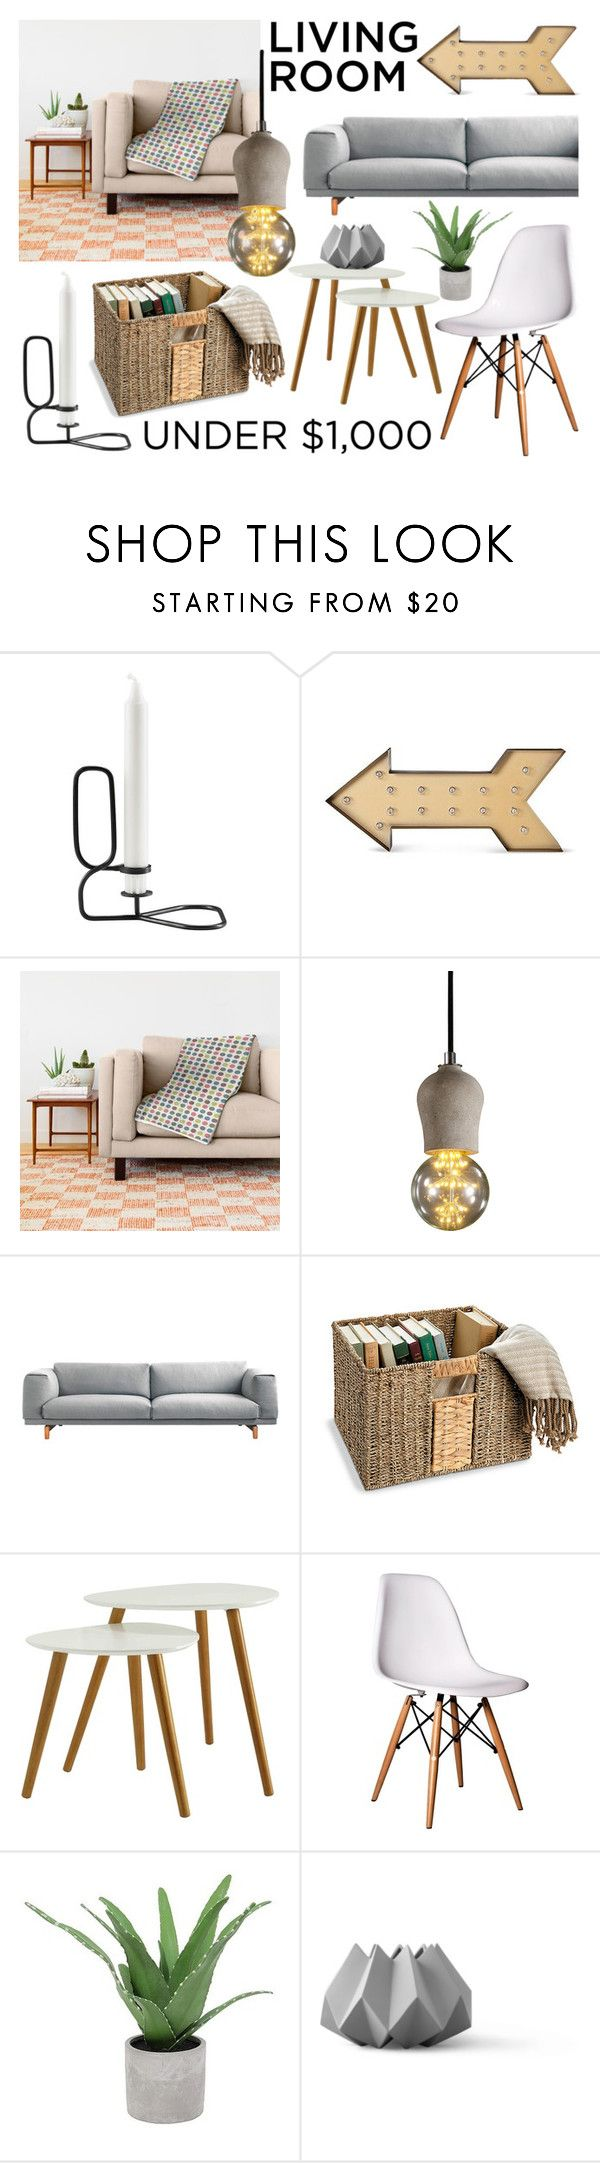 """Under $1000 Living Room"" by by-jwp ❤ liked on Polyvore featuring interior, interiors, interior design, home, home decor, interior decorating, HAY, Convenience Concepts, Threshold and Menu"